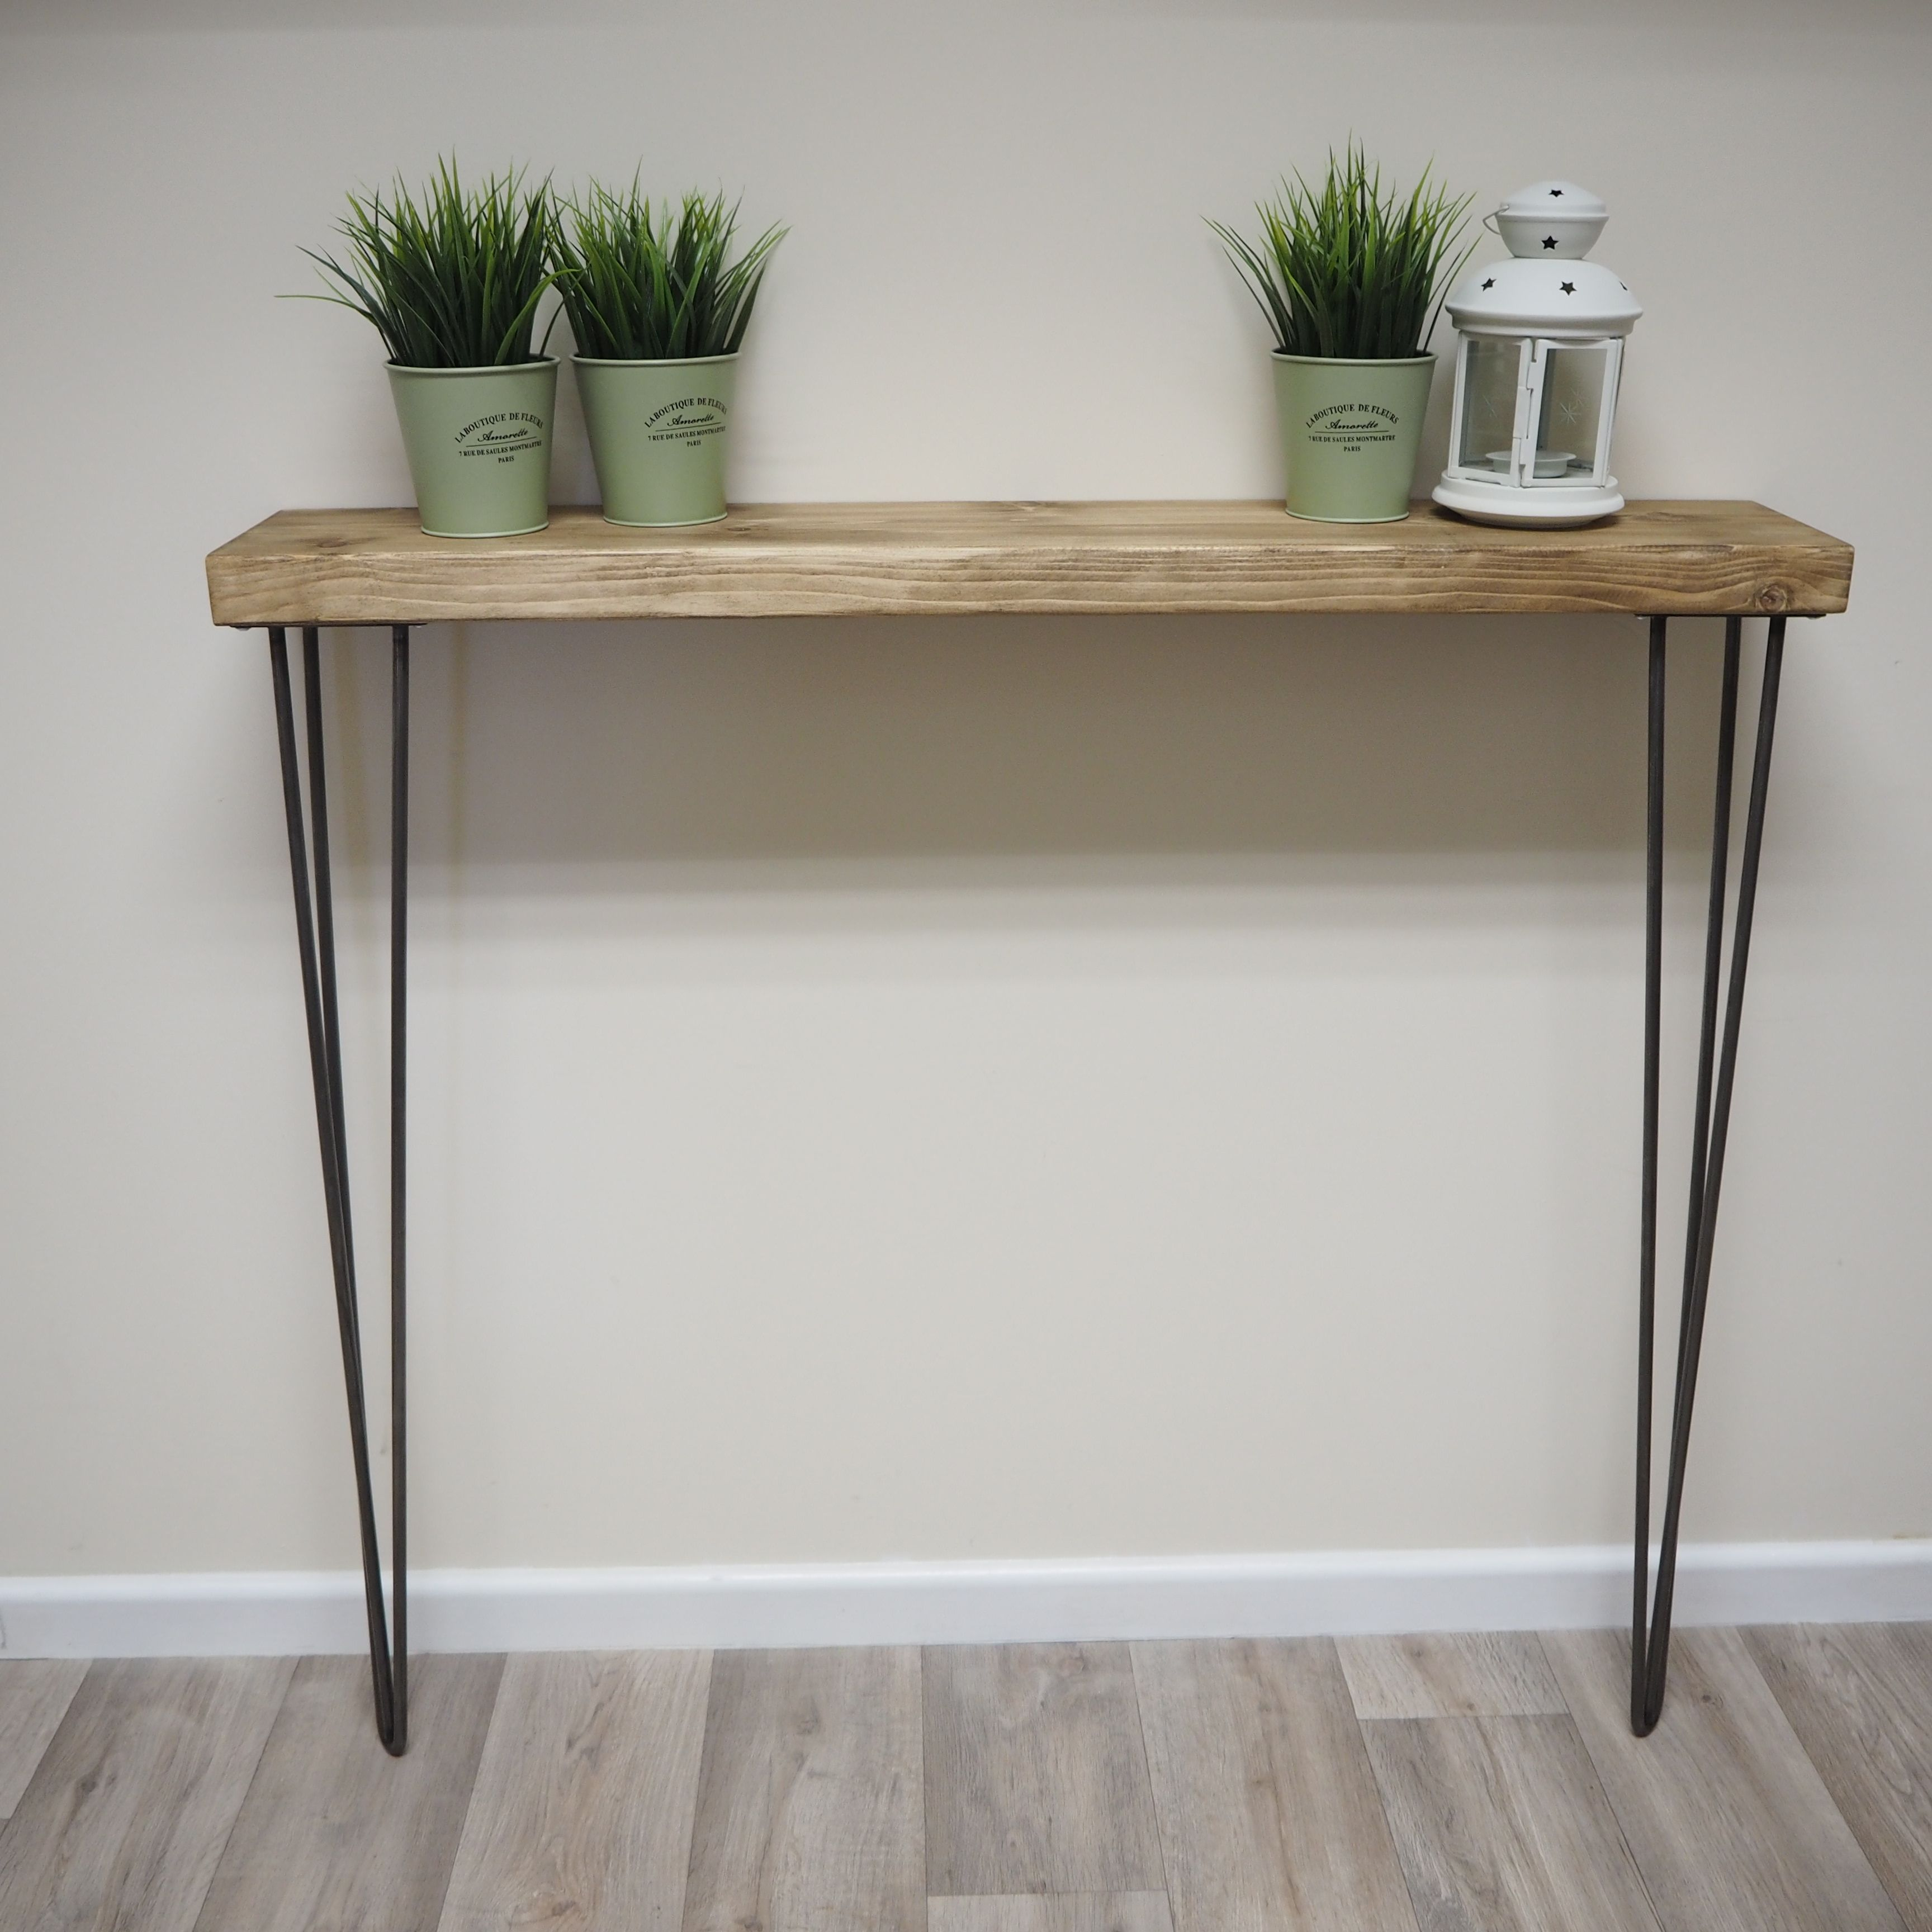 Rustic Narrow Console Table Shelf With Hairpin Legs Narrow Console Table Rustic Hallway Table Hallway Table